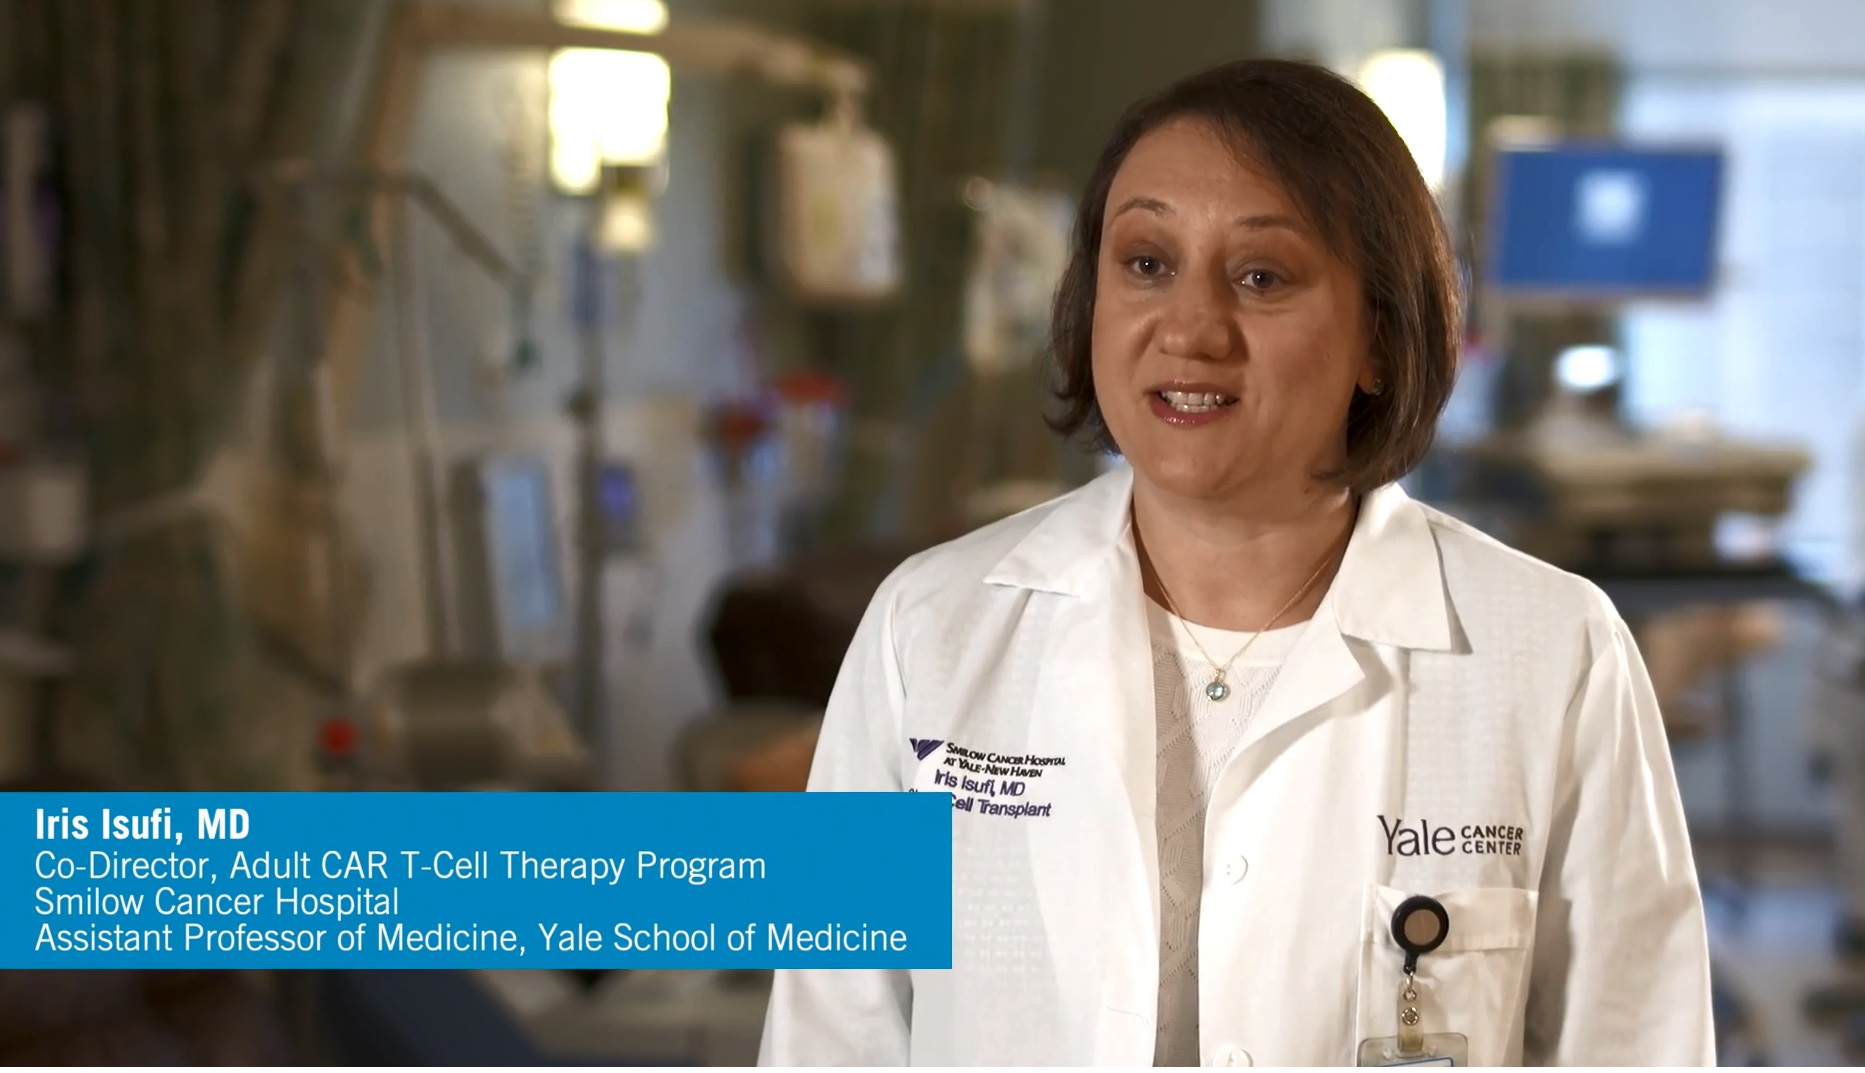 CAR T-Cell Therapy Program at Smilow Cancer Hospital